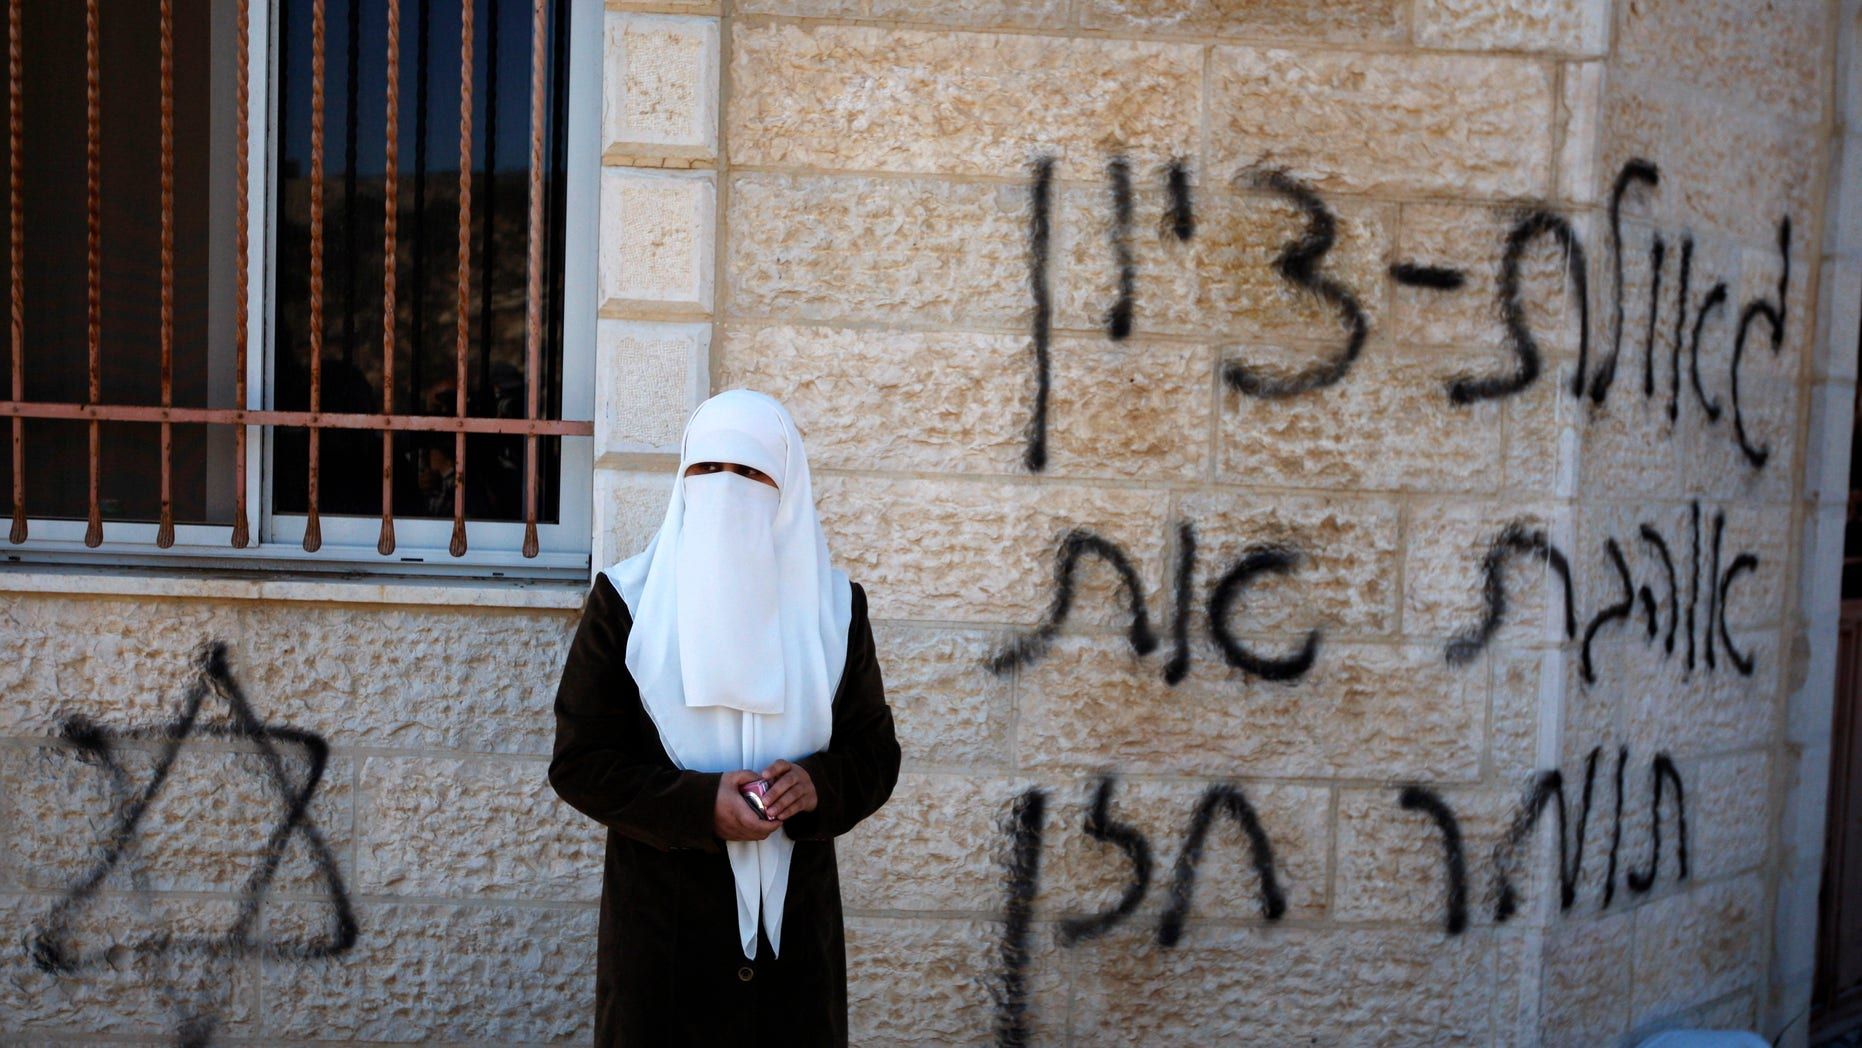 """A Palestinian woman stands next to a vandalized mosque in the West Bank village of Burka, near Ramallah, Thursday, Oct. 10, 2013. The Hebrew graffiti reads, """"Redemption of Zion, I love Tomer Hazan."""" Hazan was an Israeli soldier killed by a Palestinian in a West Bank village in September 2013. Palestinian residents of the village said that masked Jewish settlers torched three cars and defaced a mosque during an overnight attack. (AP Photo/Majdi Mohammed)"""